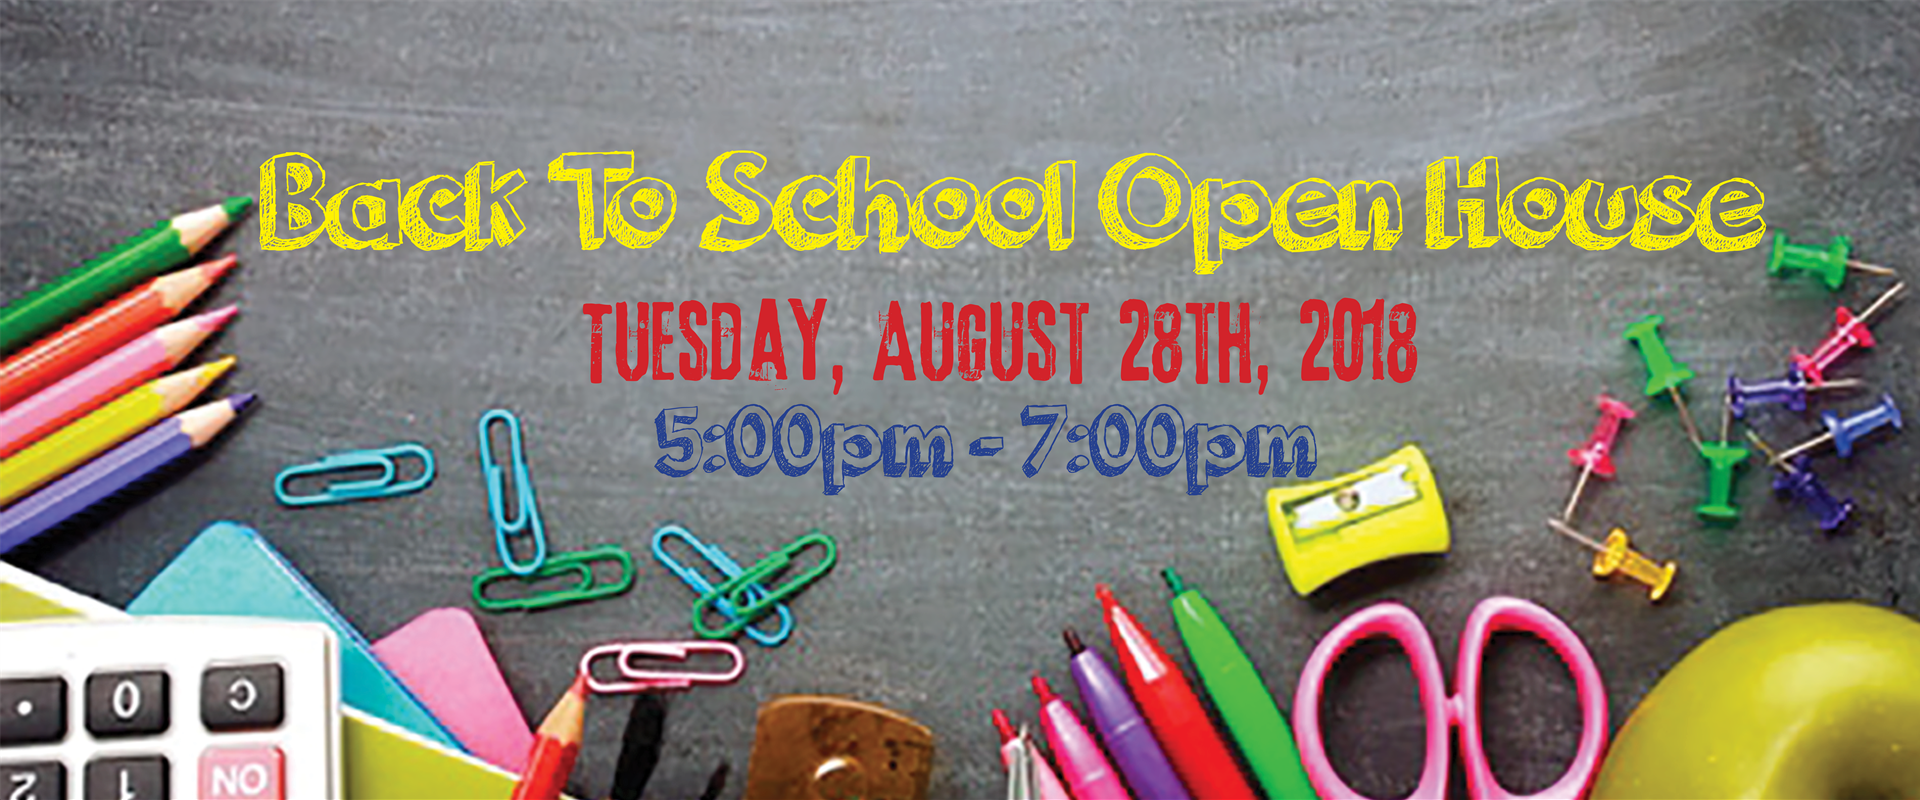 Back to School Open House  Tuesday, August 28, 2018 5:00pm - 7:00pm